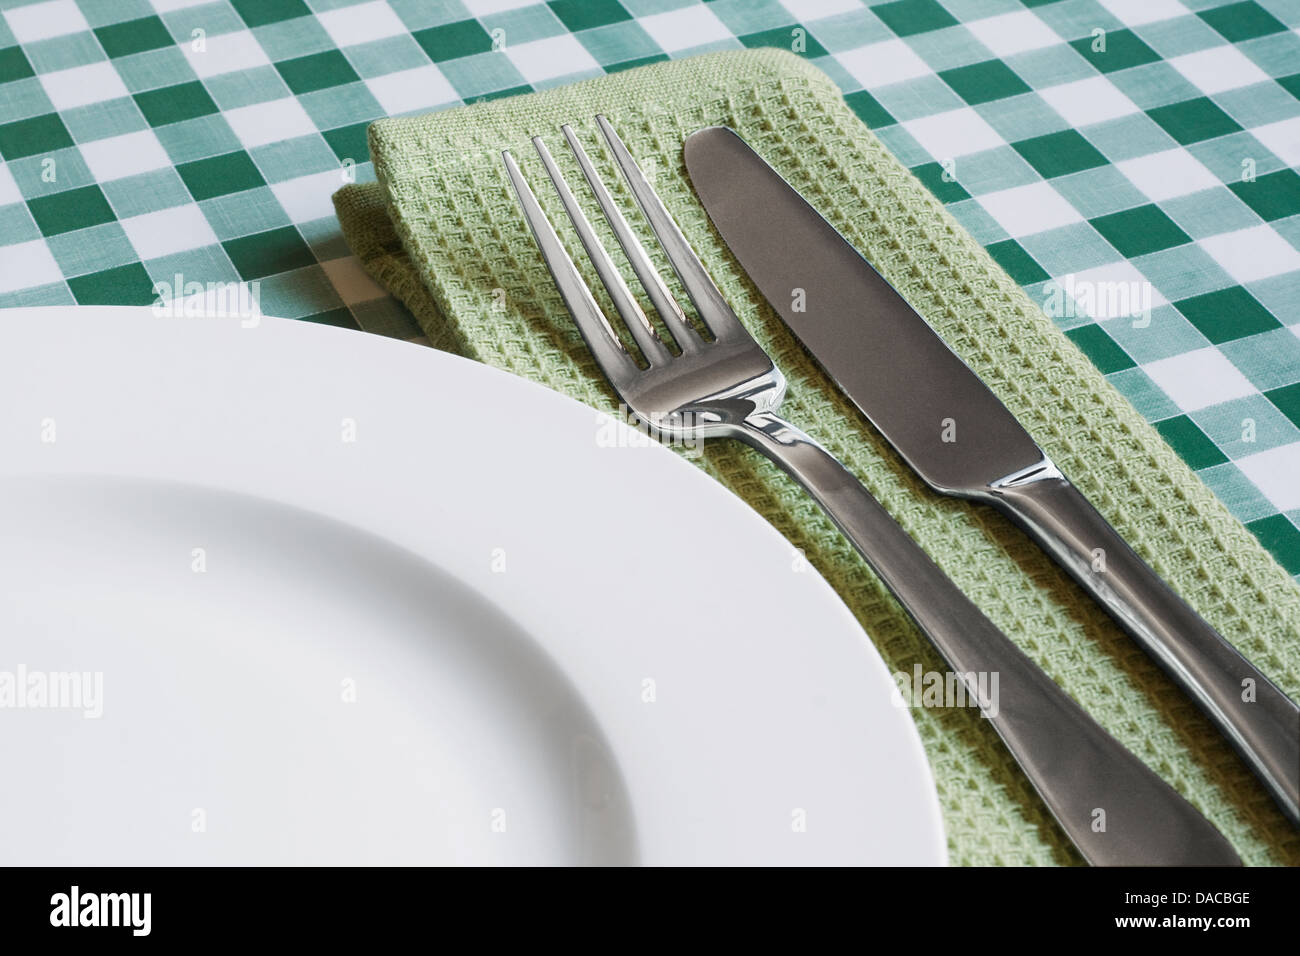 place setting with empty plate knife and fork on a green gingham background popular symbol & Knife Fork Plate Table Cloth Stock Photos u0026 Knife Fork Plate Table ...